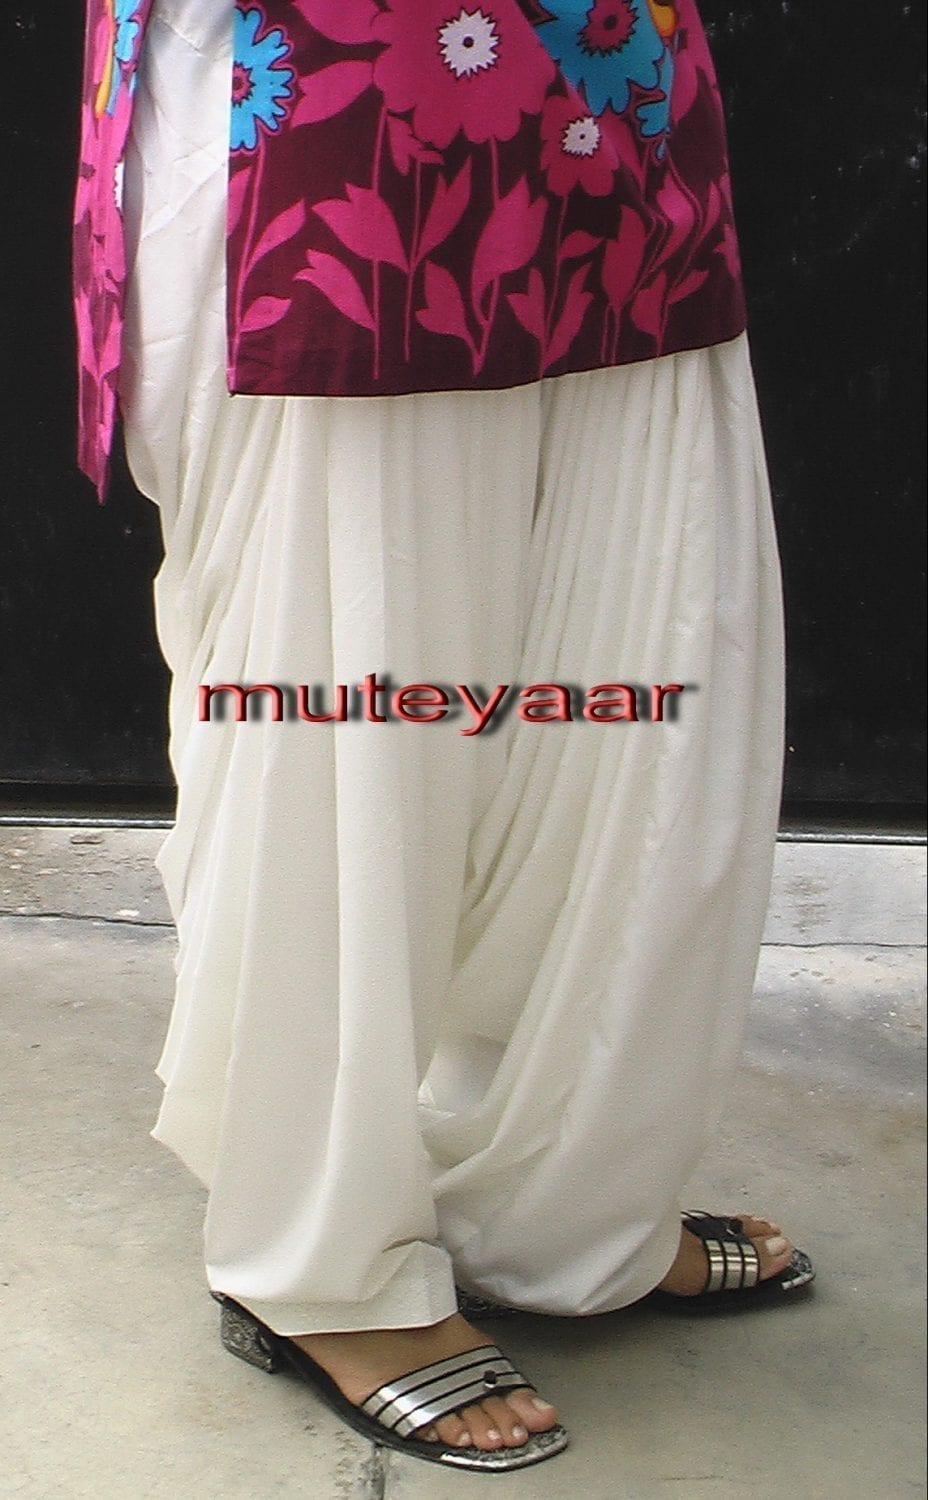 Patiala Salwar Ready to Wear - Buy Online from Patiala City !! 6